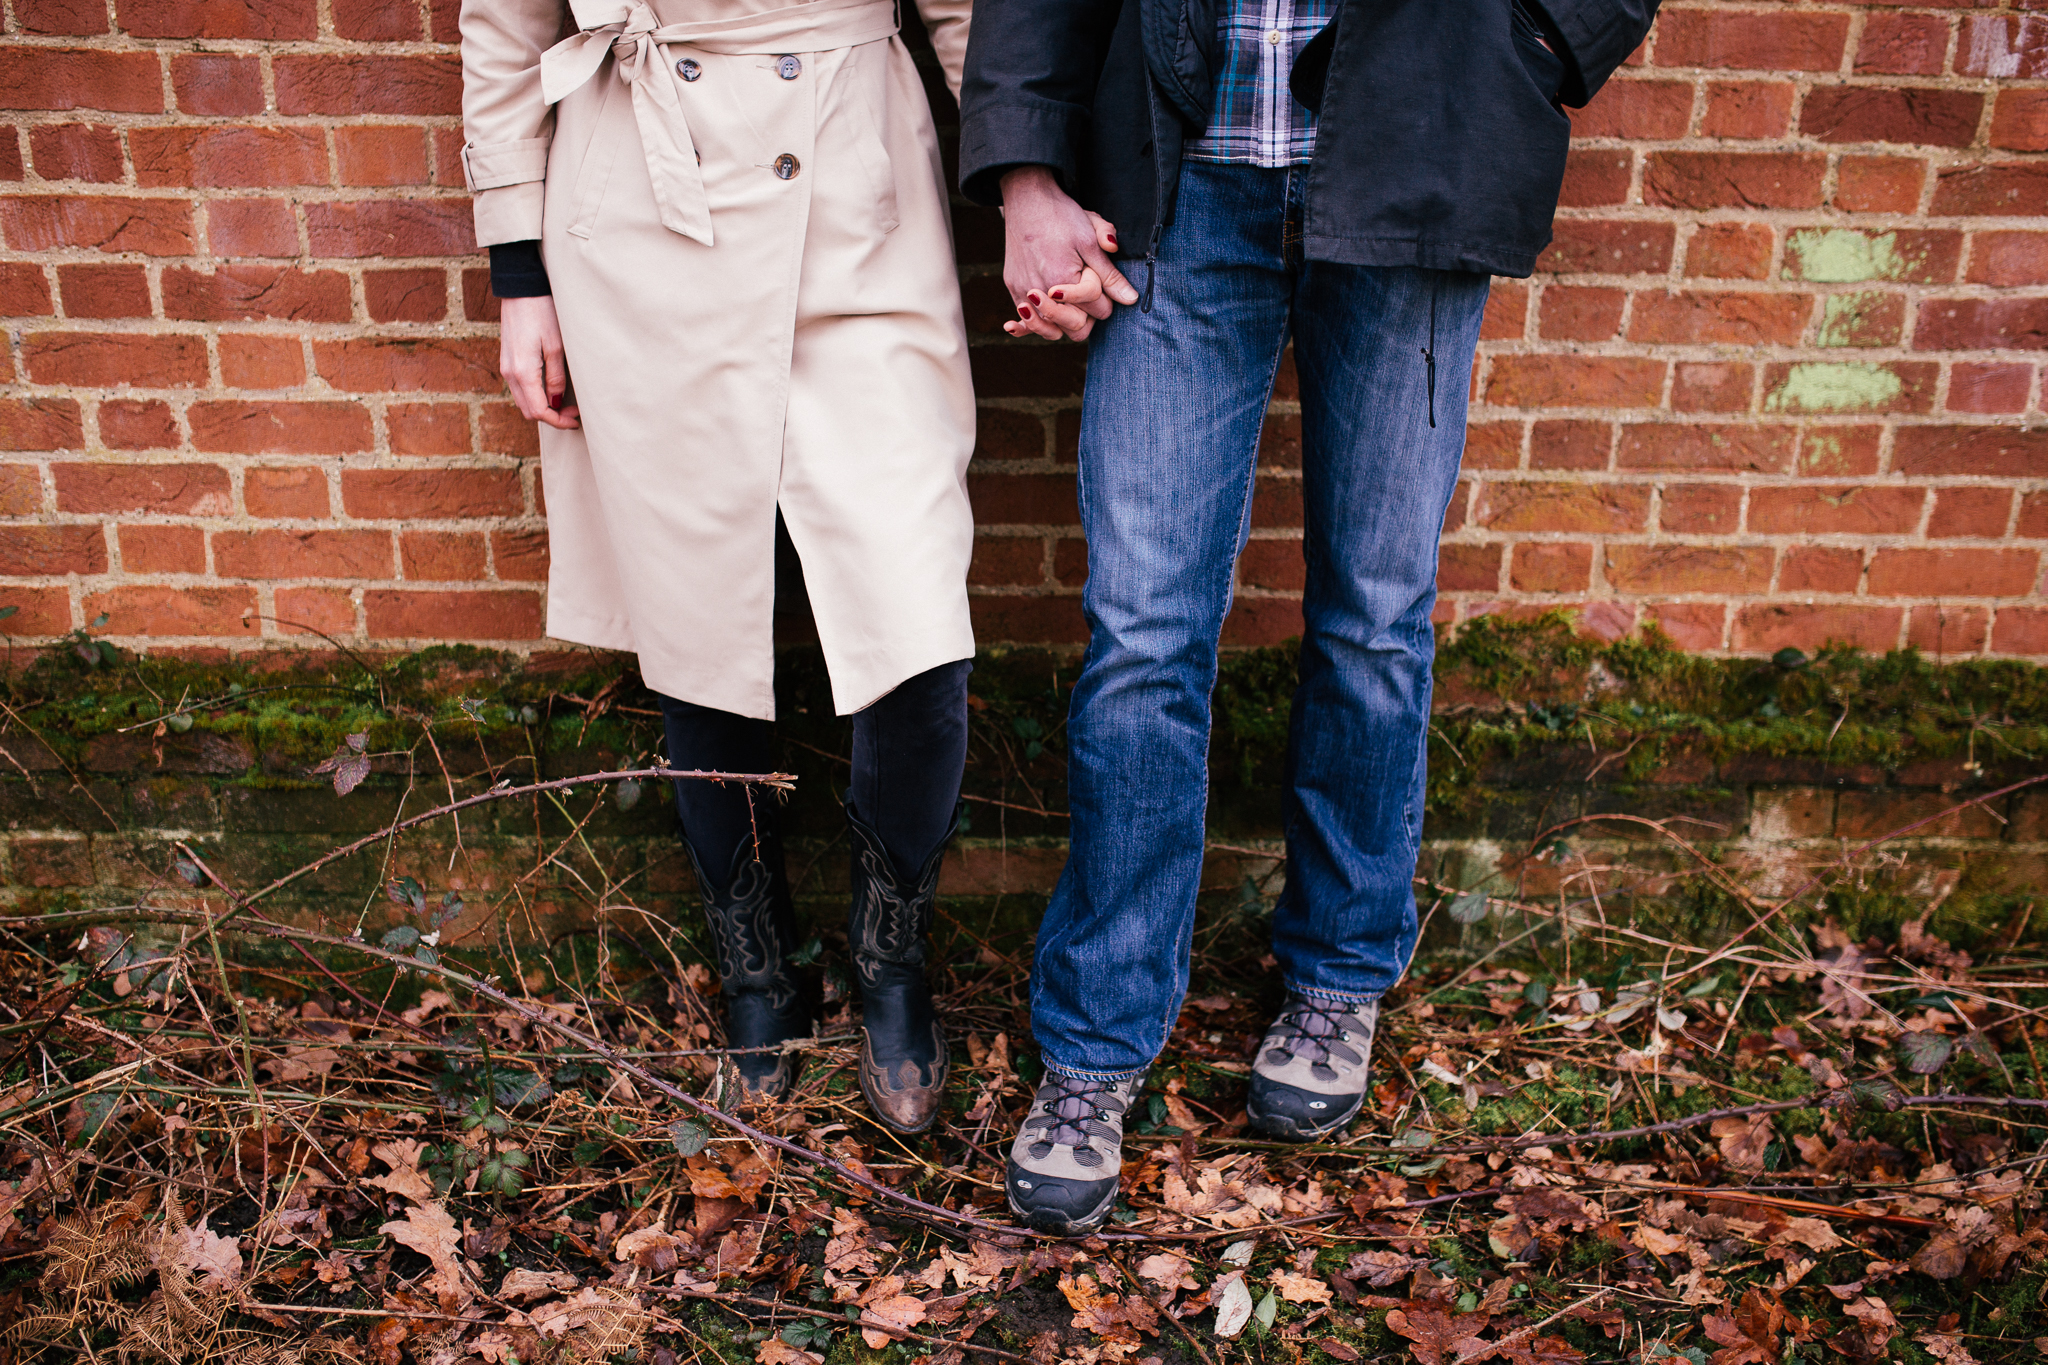 Richmond Park Engagement Photography Wedding Photographer Surrey (13 of 54).jpg